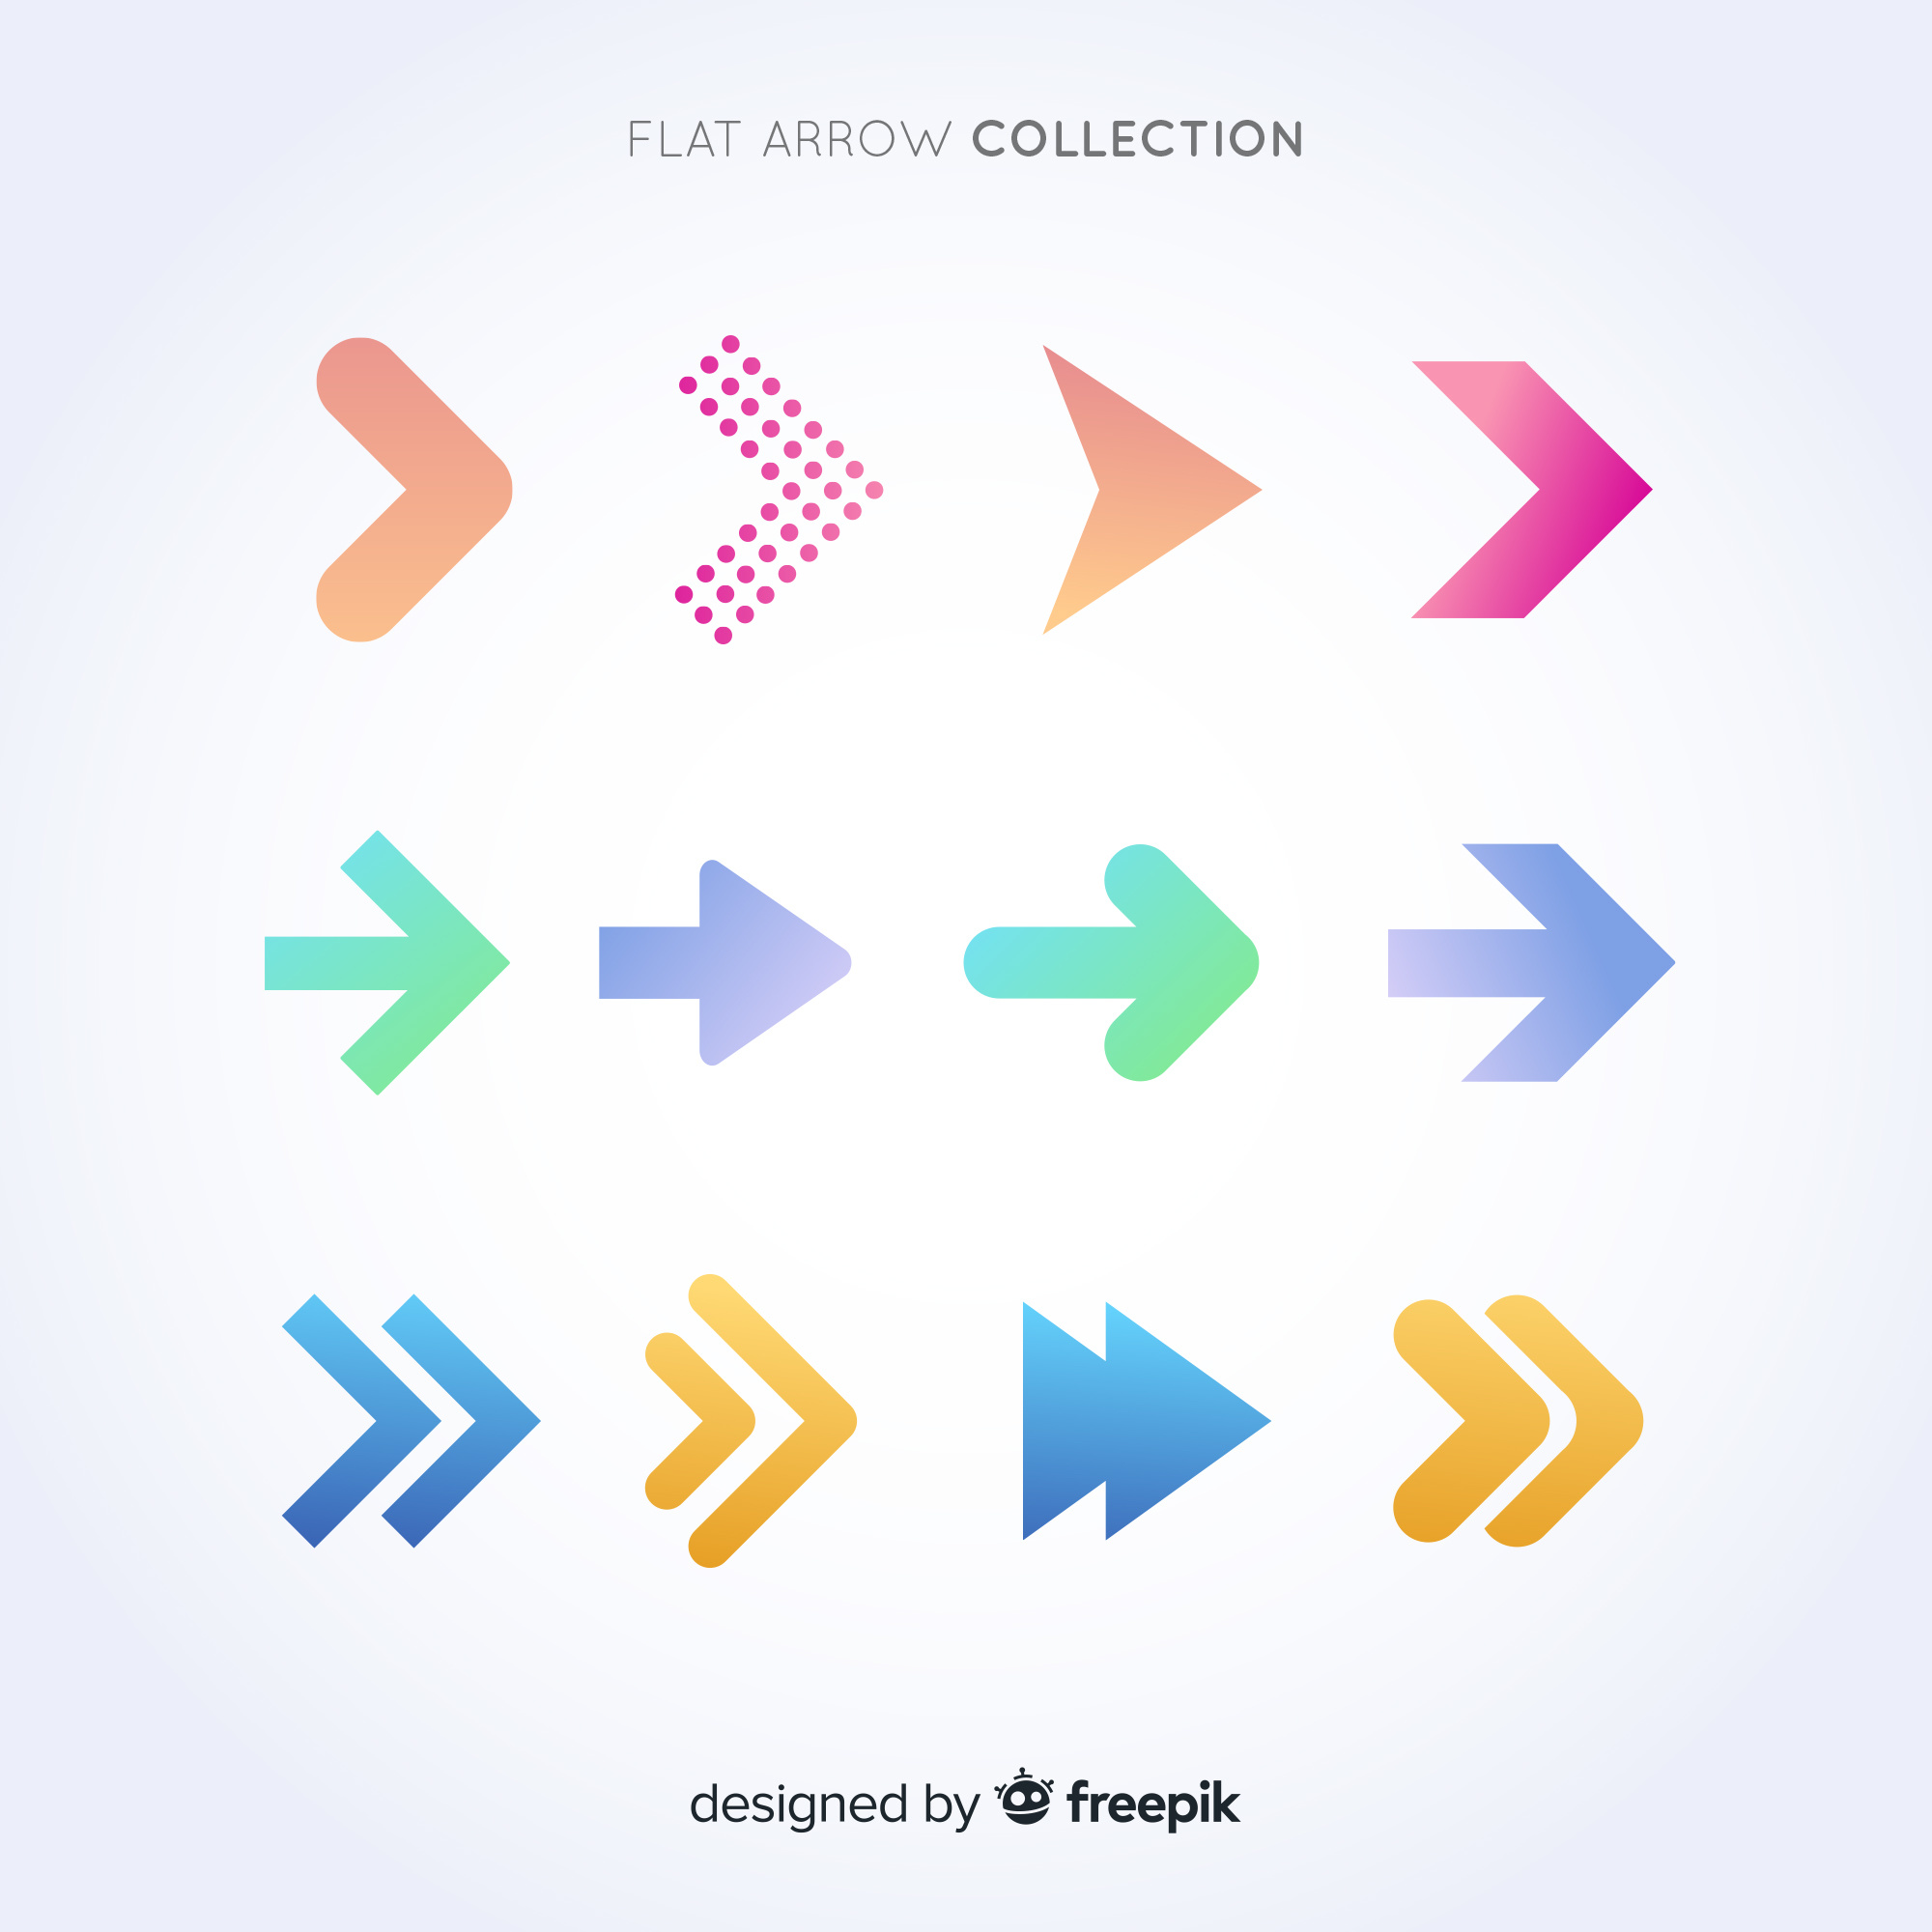 Flat arrow collection